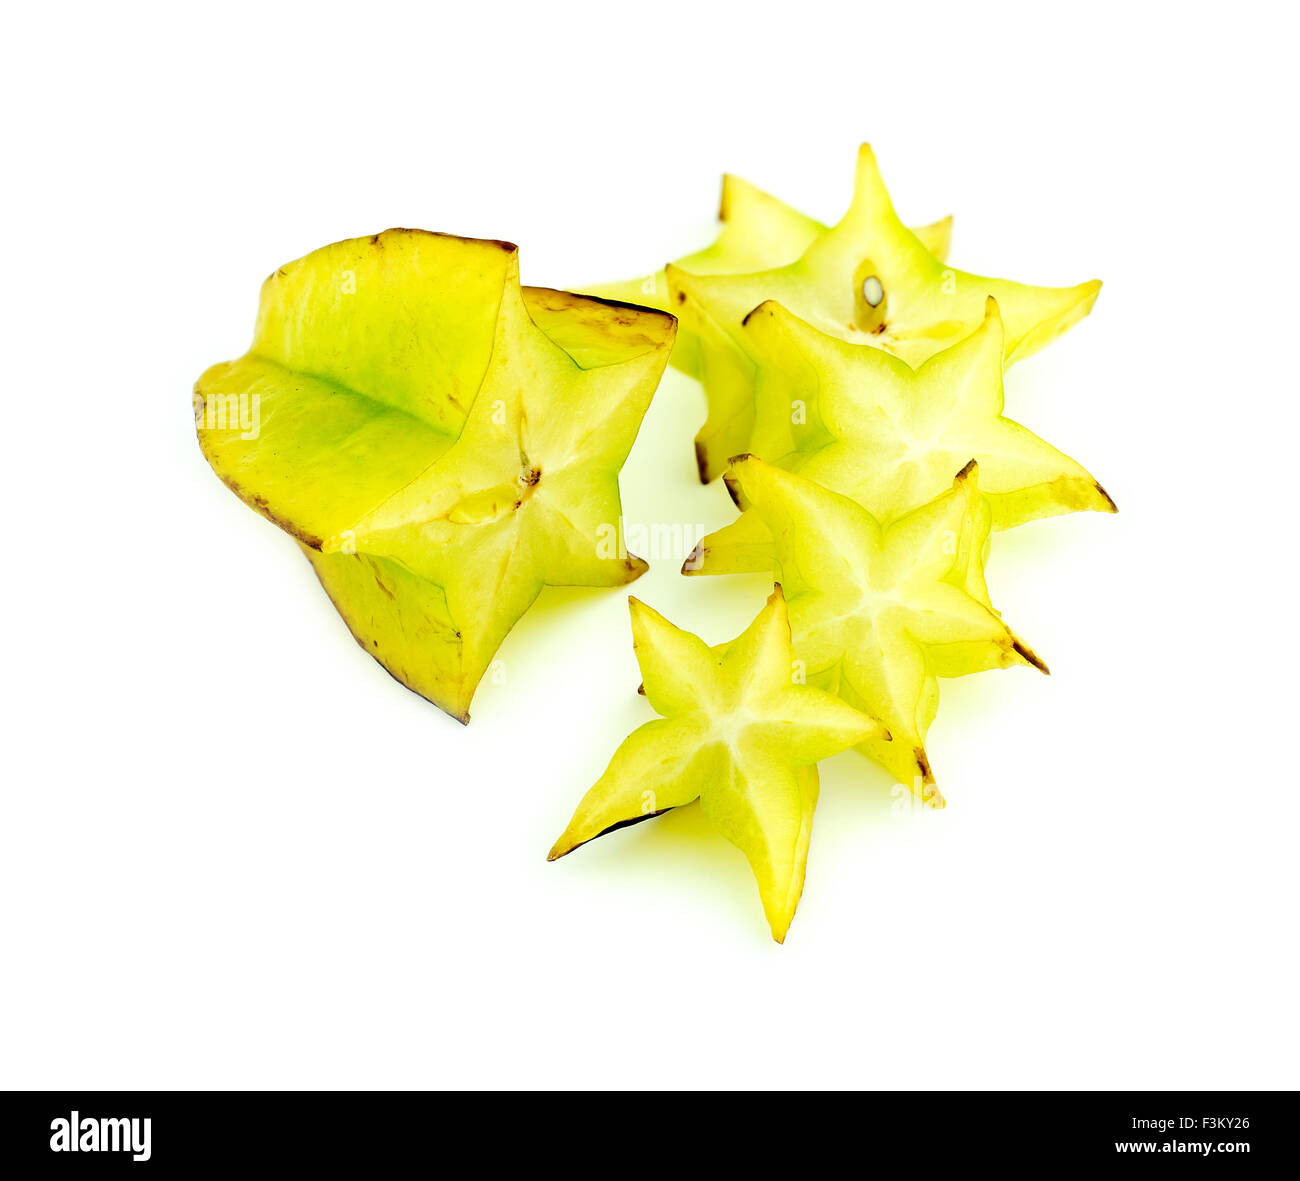 Beautiful setup of ripe vibrant starfruit slices isolated on white - Stock Image